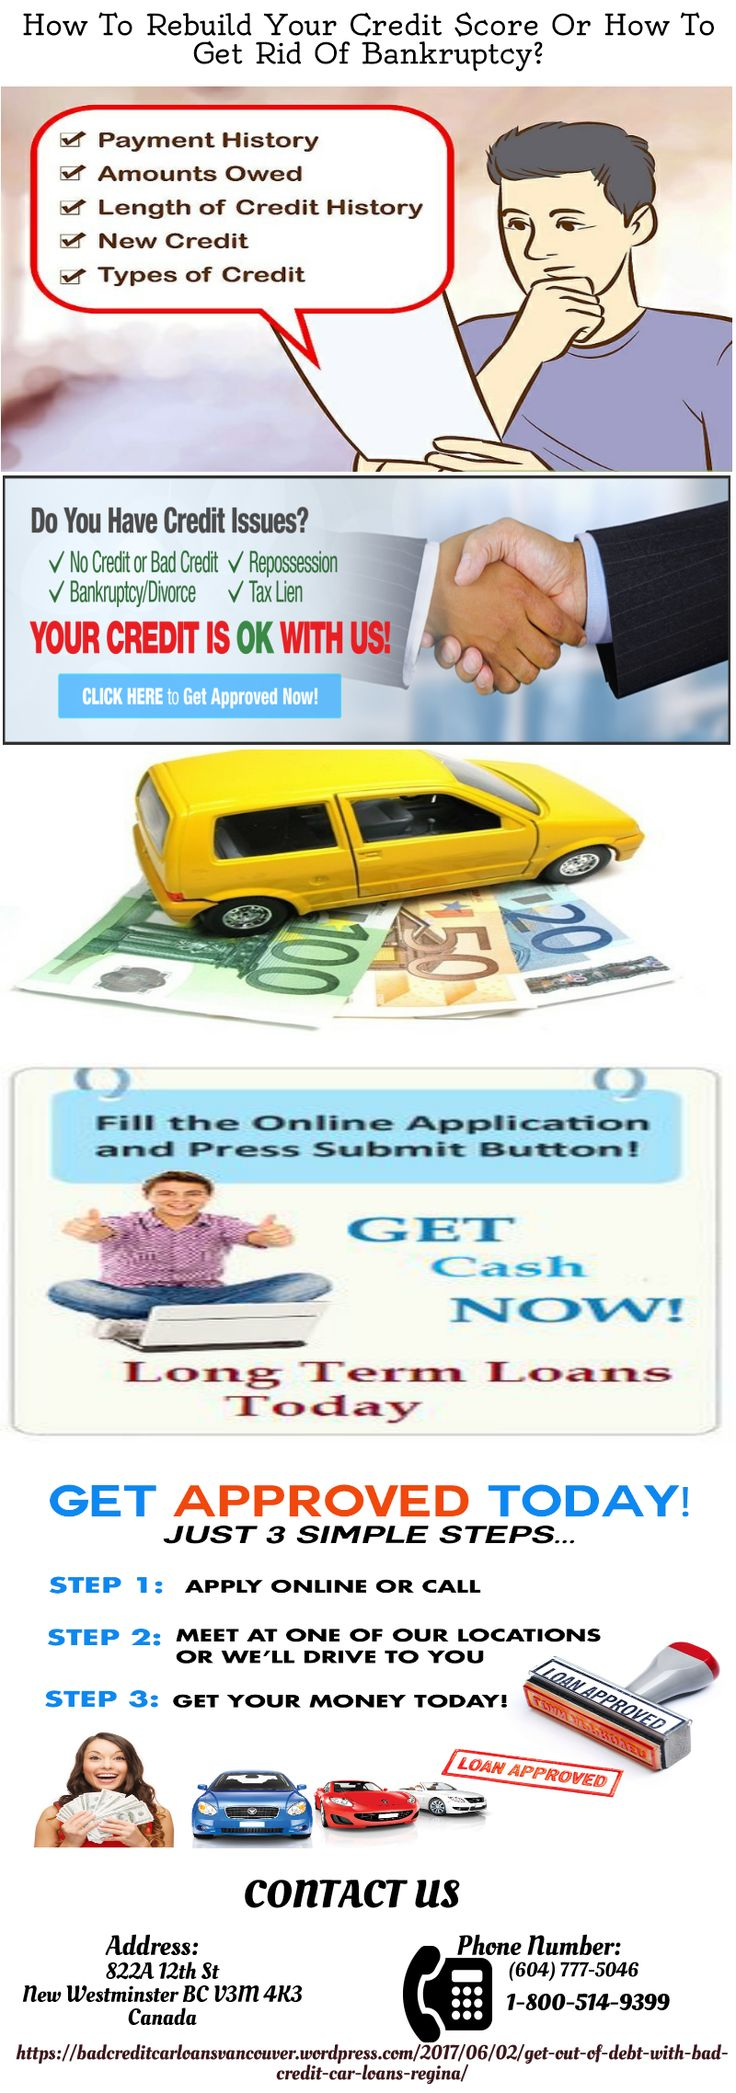 Need instant approval on car title loans in regina call pit stop loans canada and get approved for auto title loans with no prepayment penalty and at